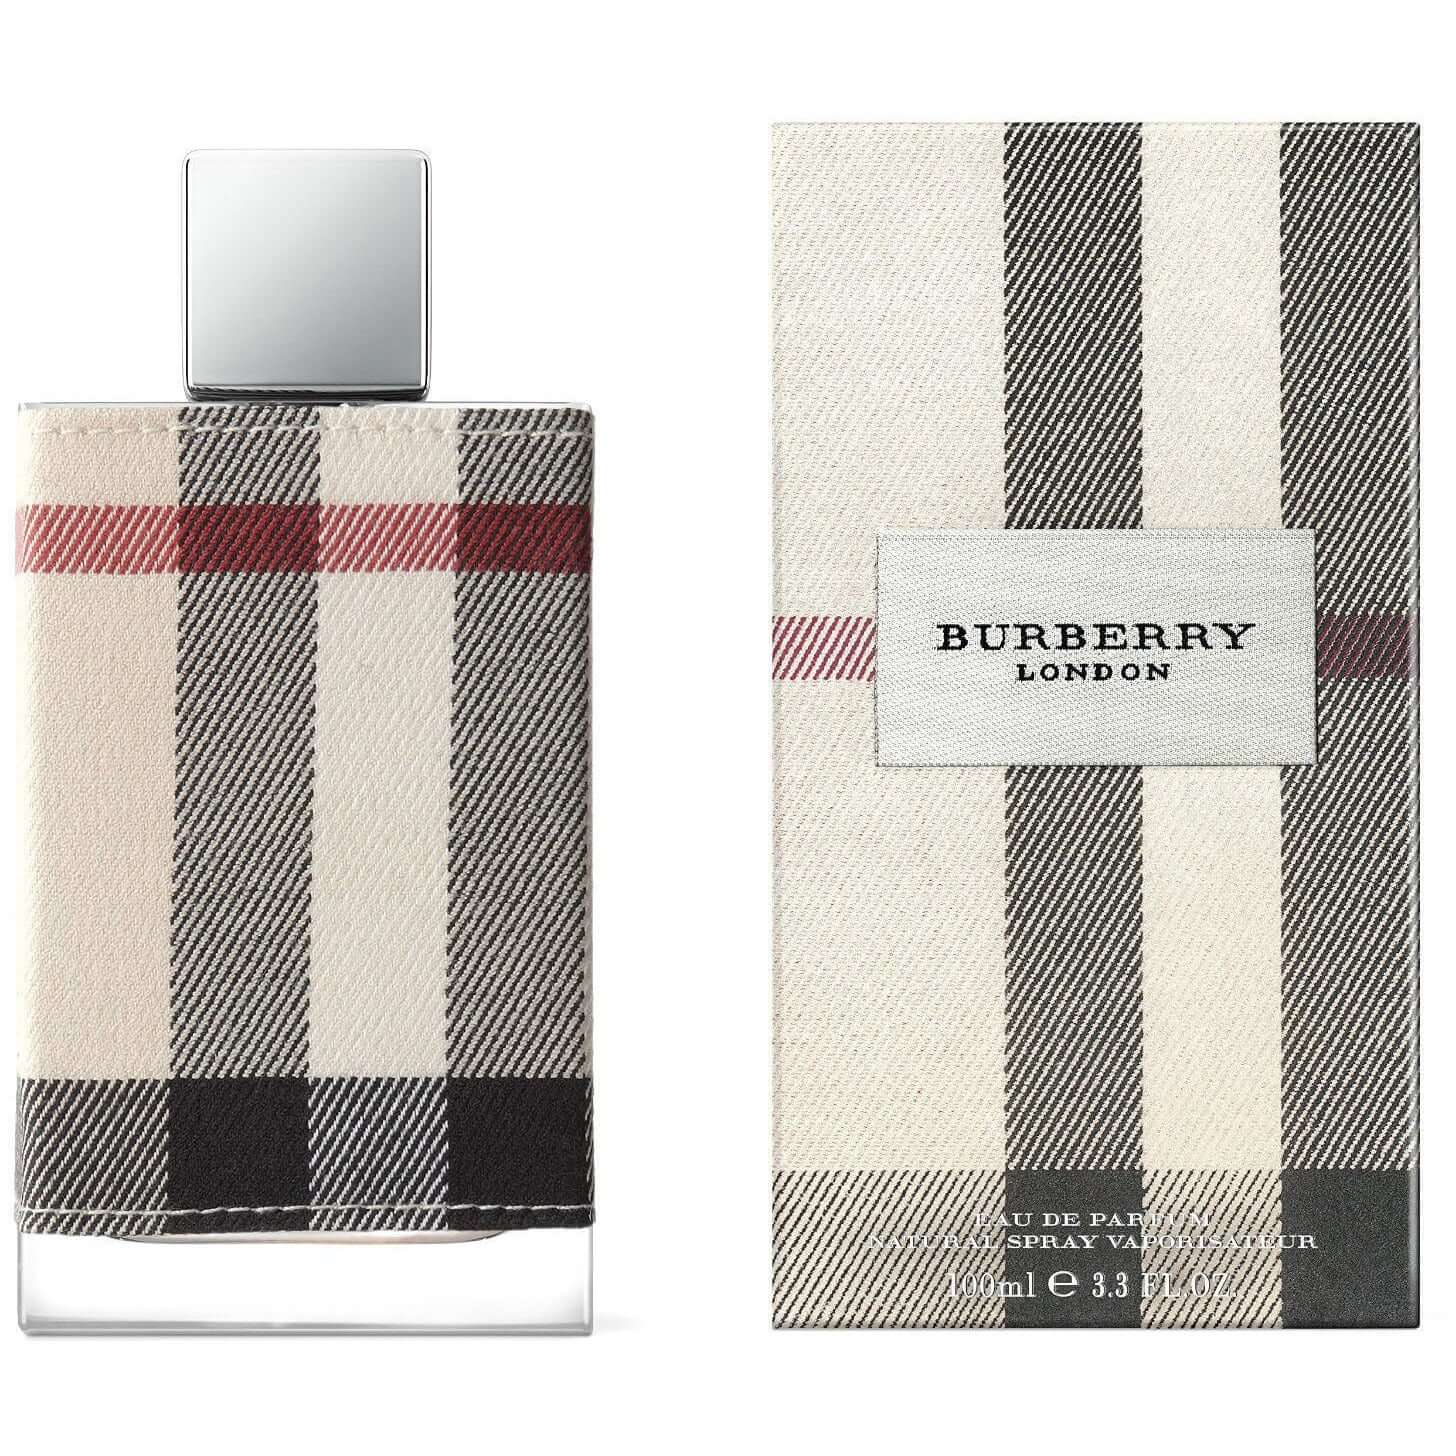 burberry-london-perfume-fabric-edp-3-4-oz-new-edition-new-in-box